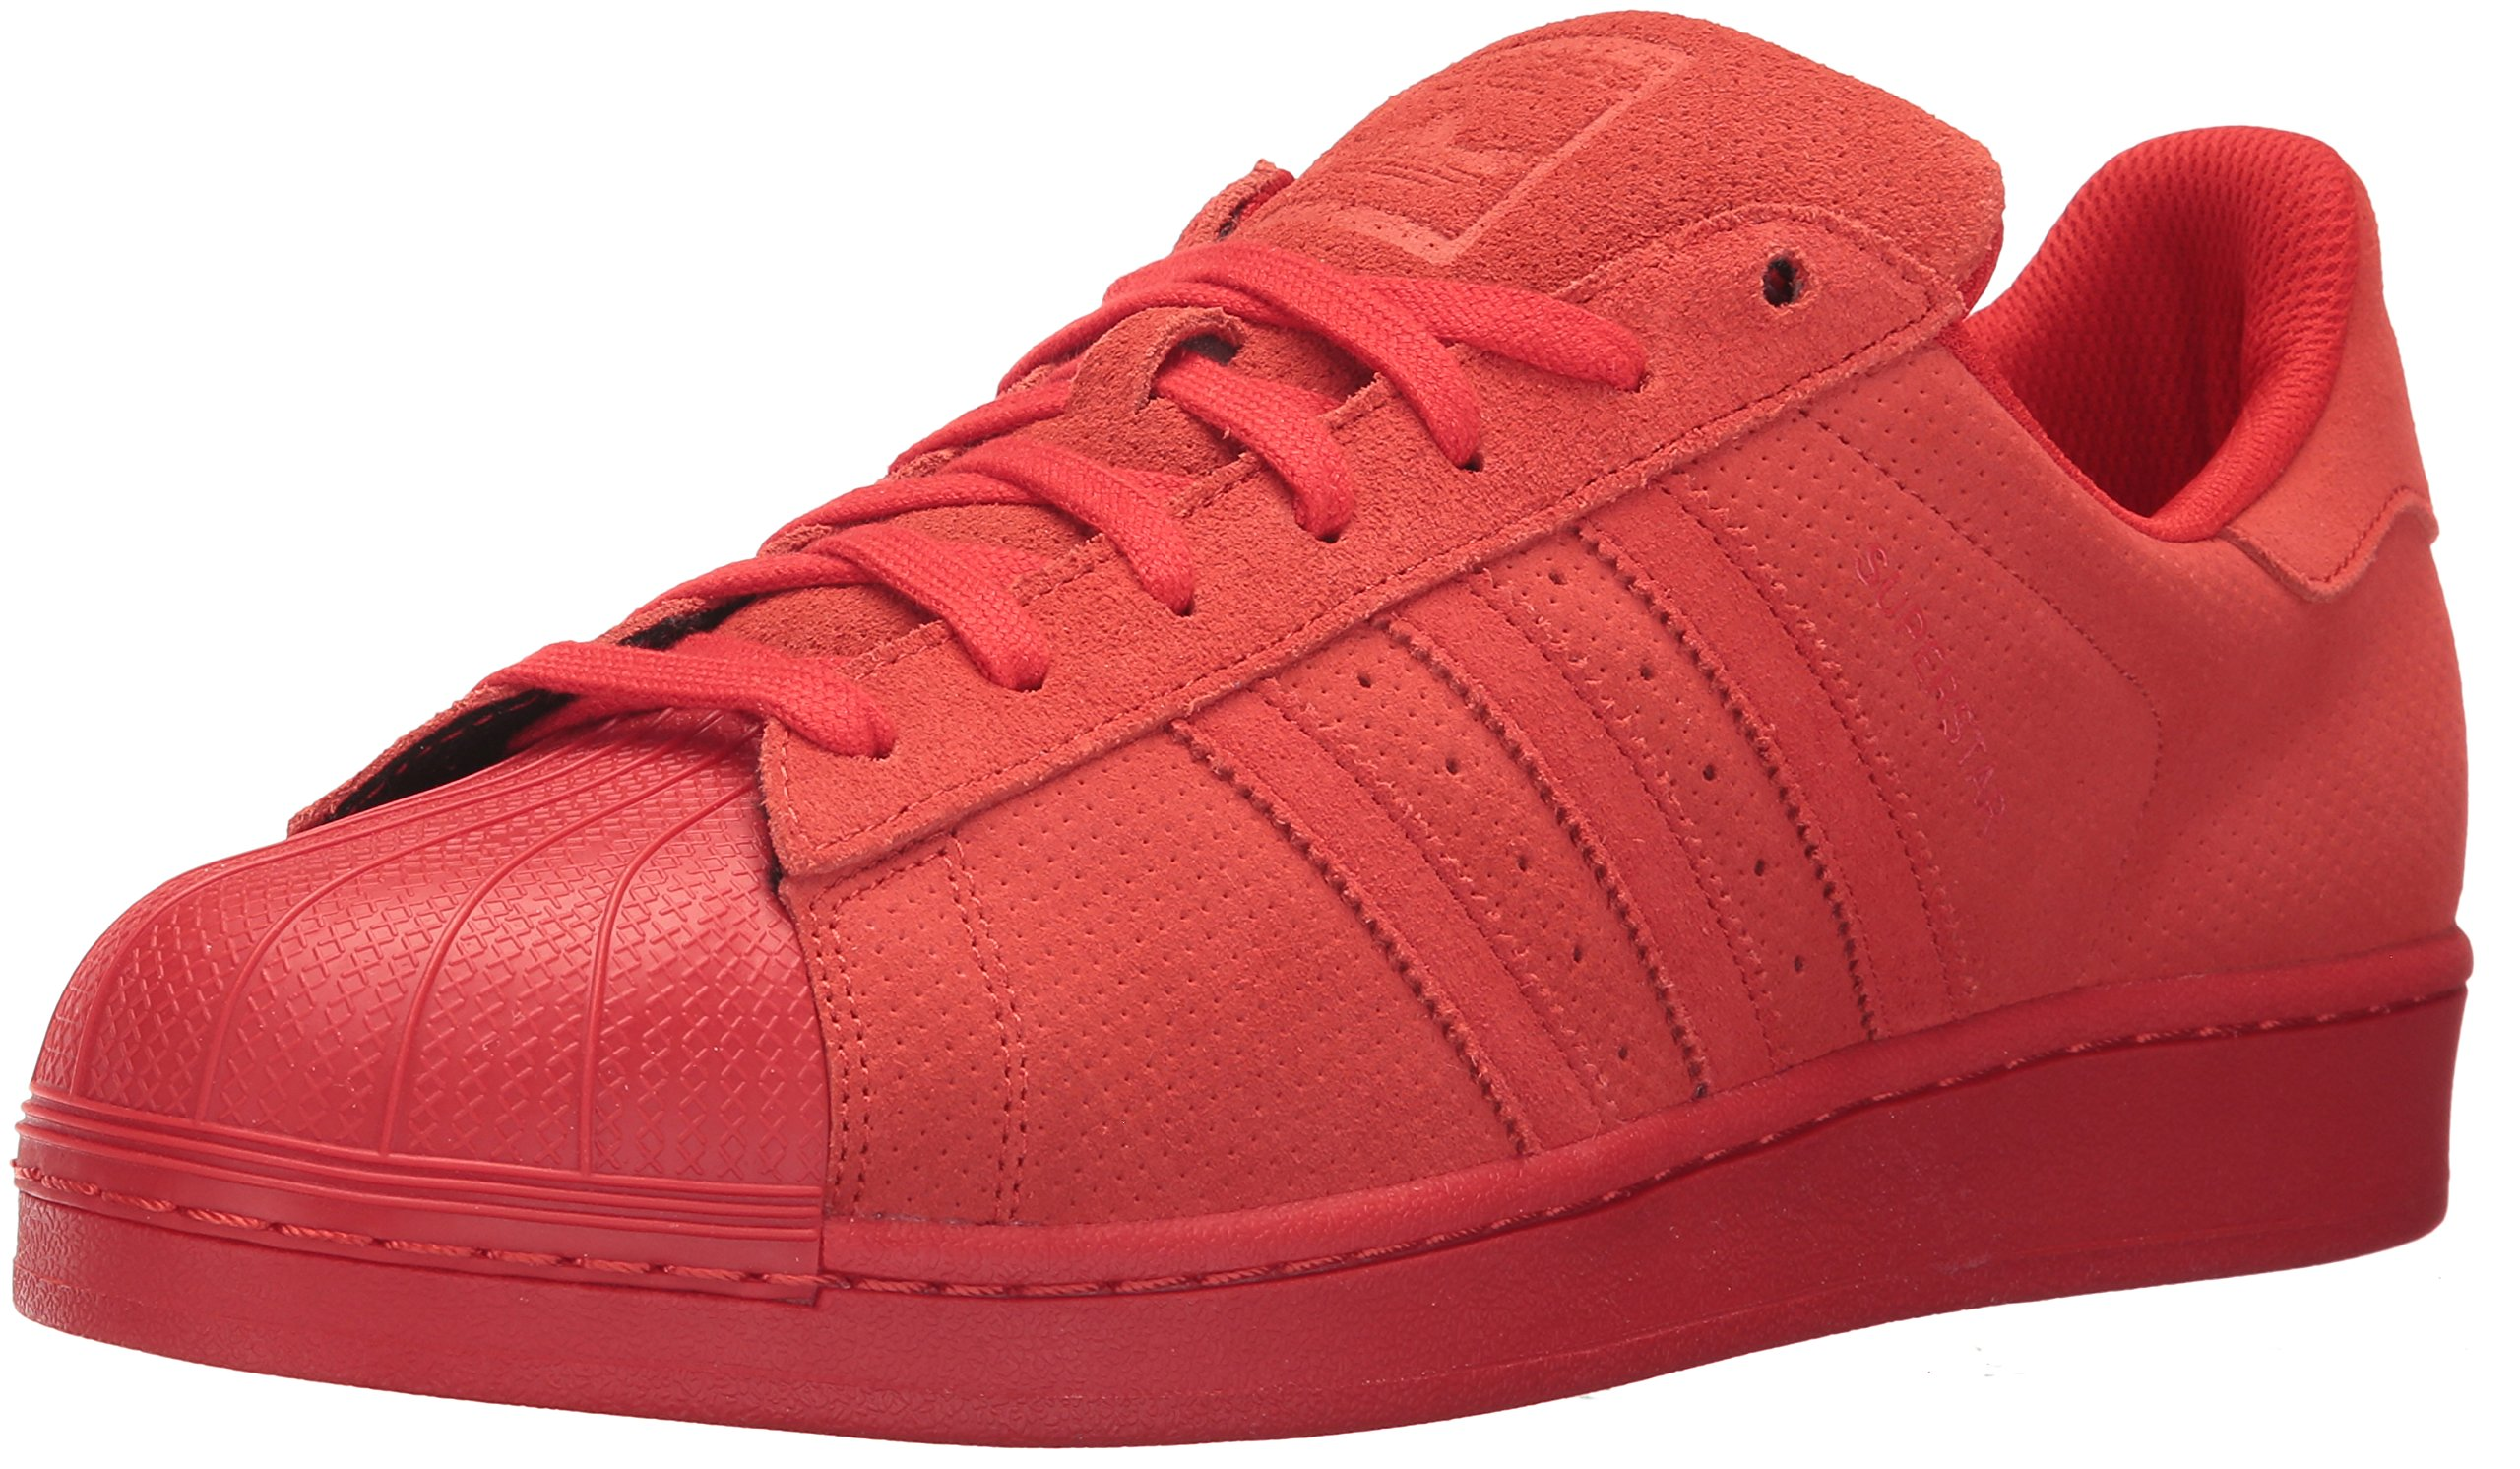 big sale 6b163 7931d Galleon - Adidas Originals Men s Superstar RT Fashion Sneaker Running Shoe,  Red, (13 M US)